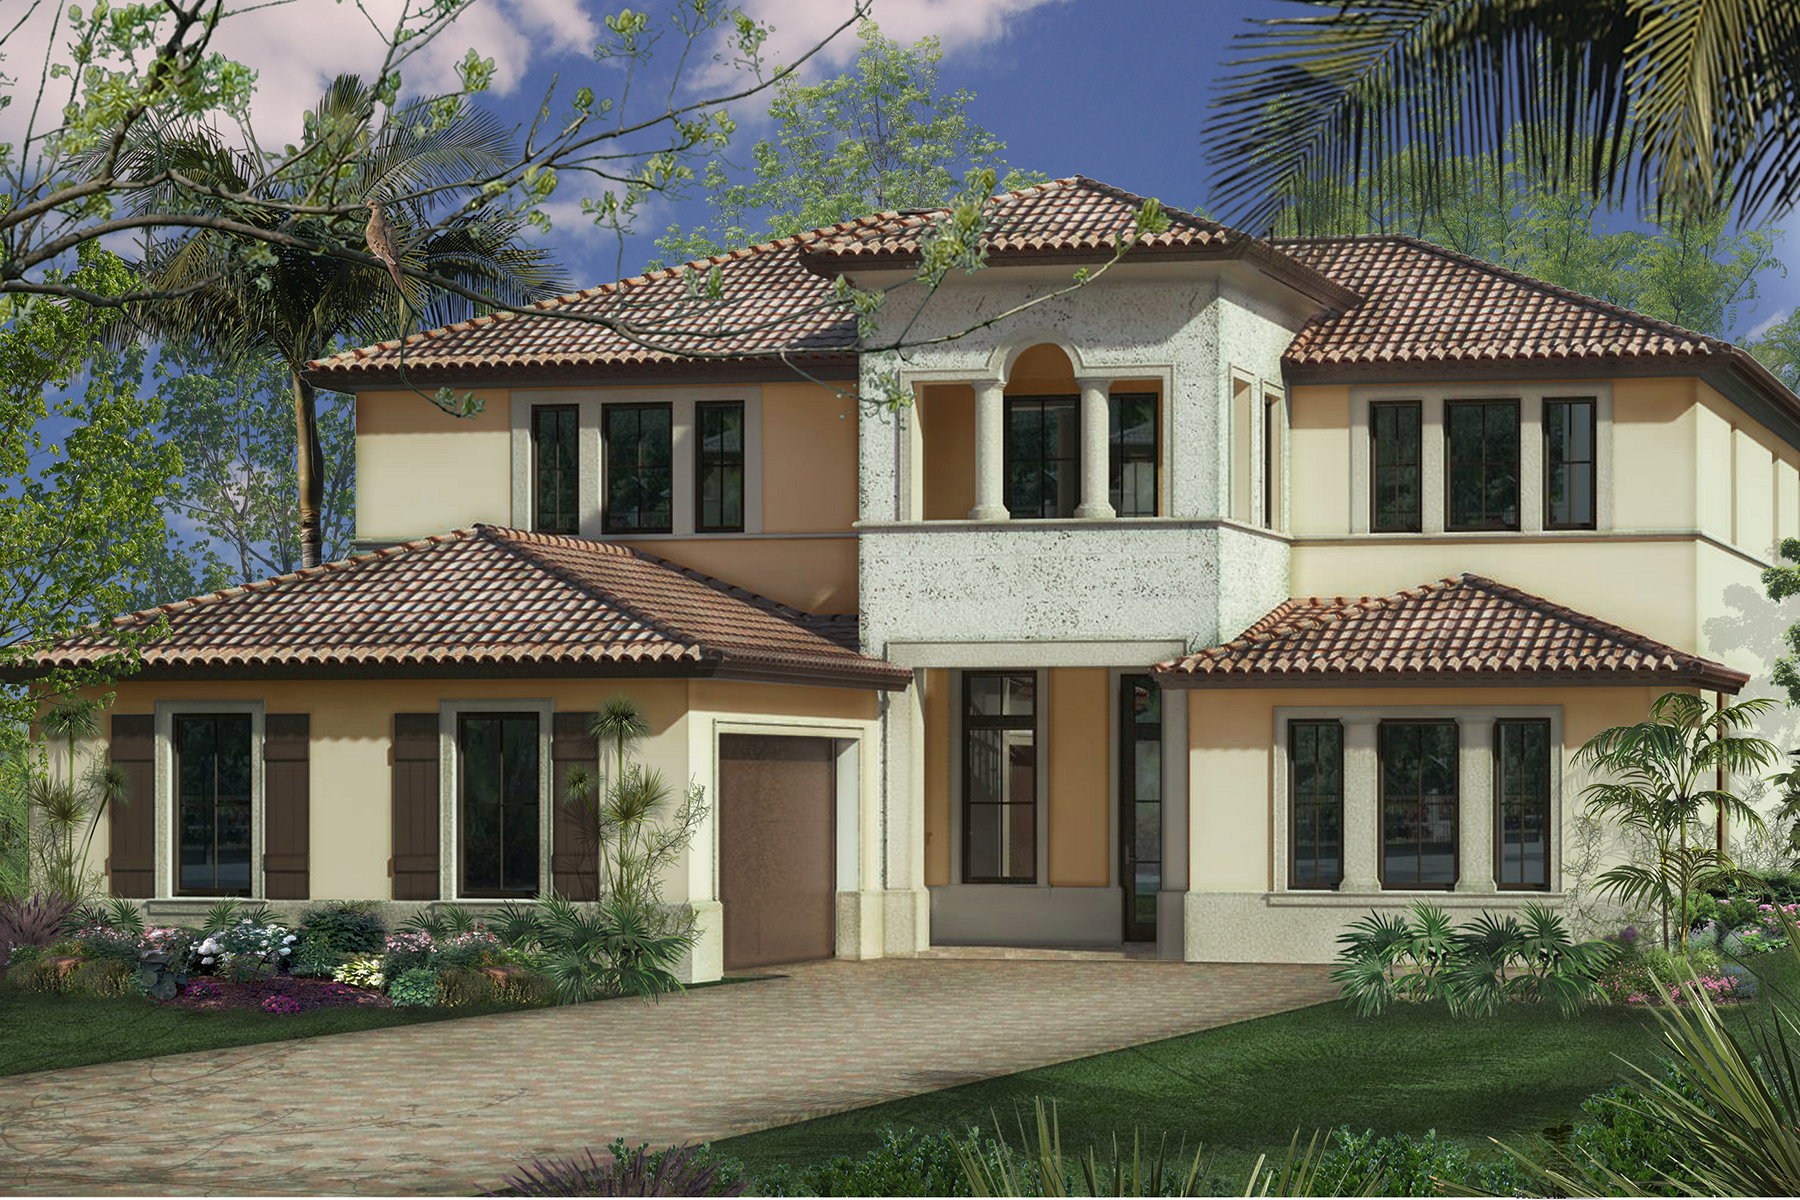 Single Family Home for Sale at Naples 2101 Modena Ct Naples, Florida, 34105 United States